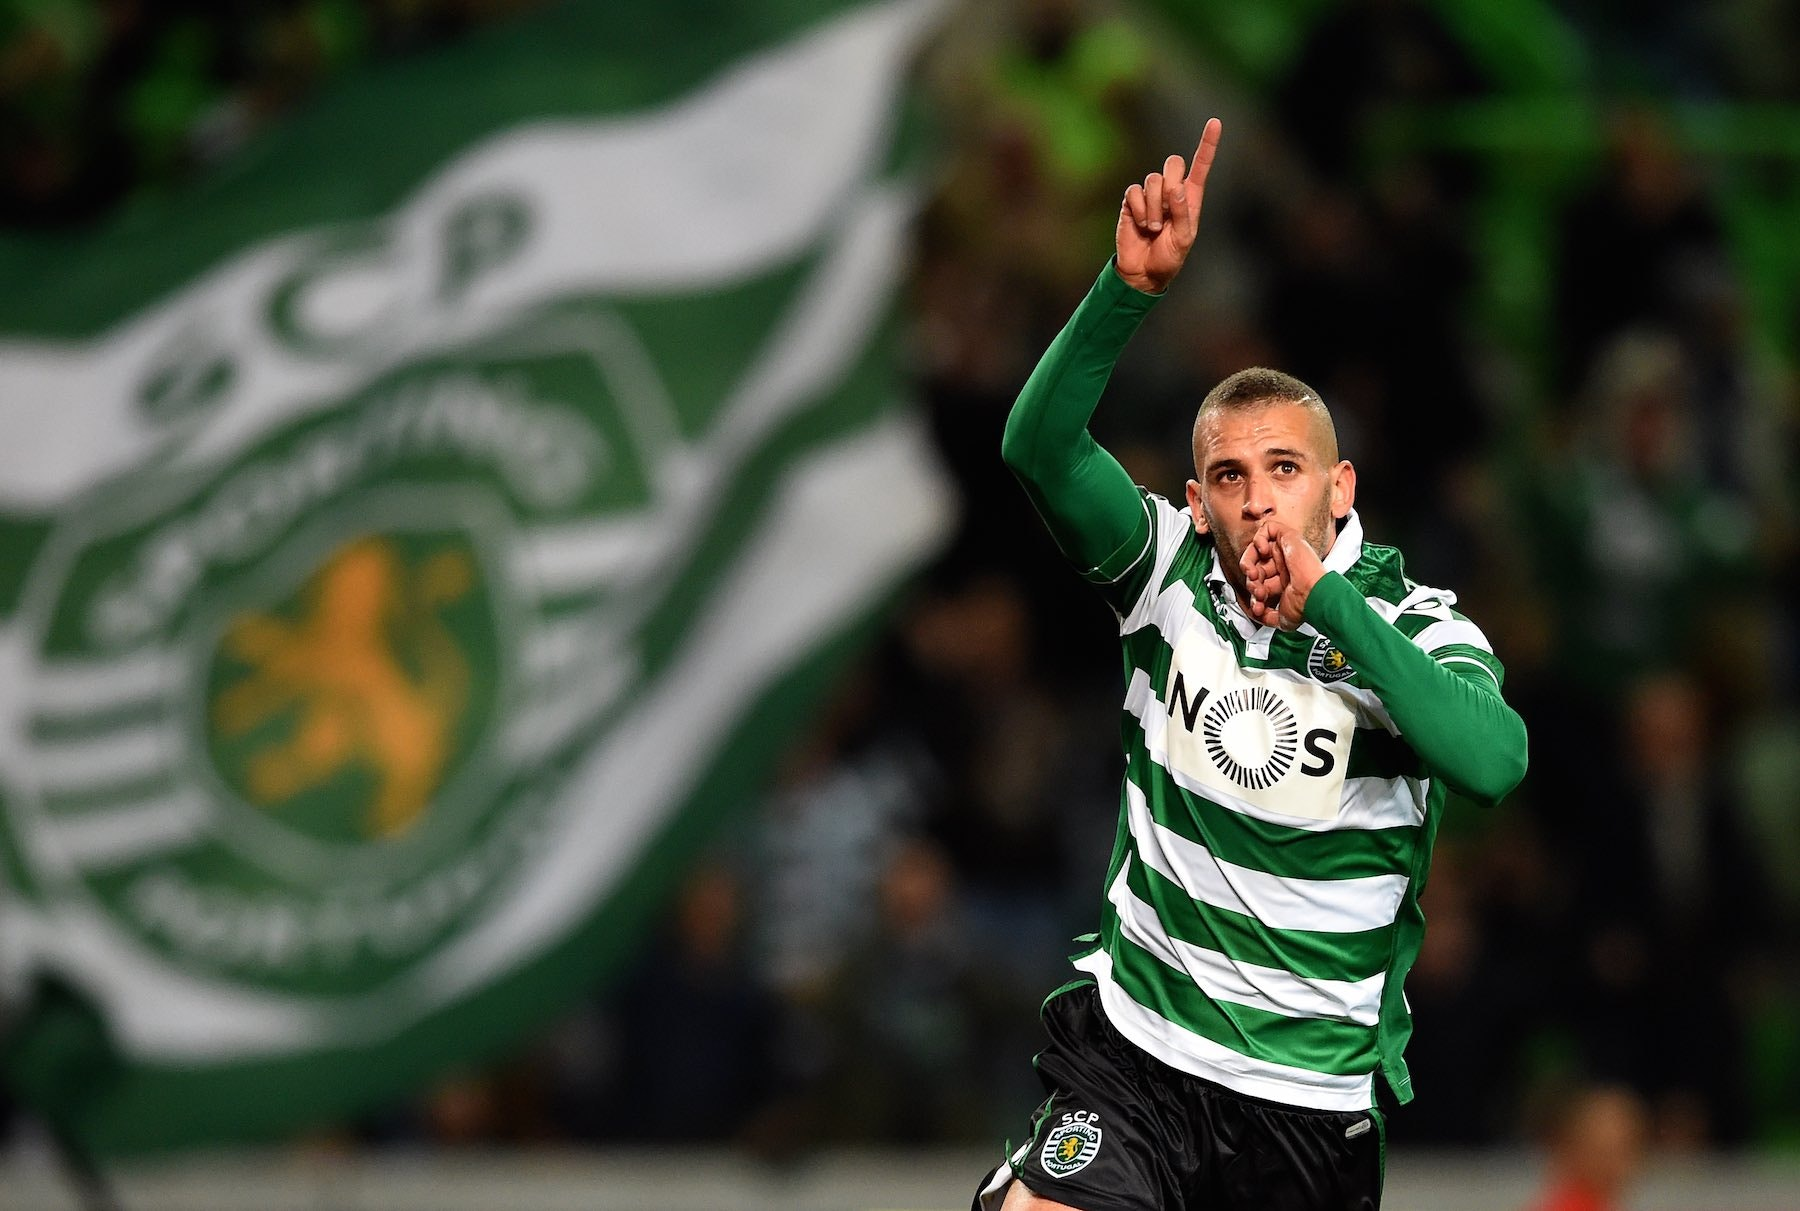 Sporting's Algerian forward Islam Slimani celebrates after scoring the opening goal during the Portuguese League football match Sporting CP vs FC Porto at Alvalade stadium in Lisbon on January 2, 2016. AFP PHOTO/ FRANCISCO LEONG / AFP / FRANCISCO LEONG (Photo credit should read FRANCISCO LEONG/AFP/Getty Images)